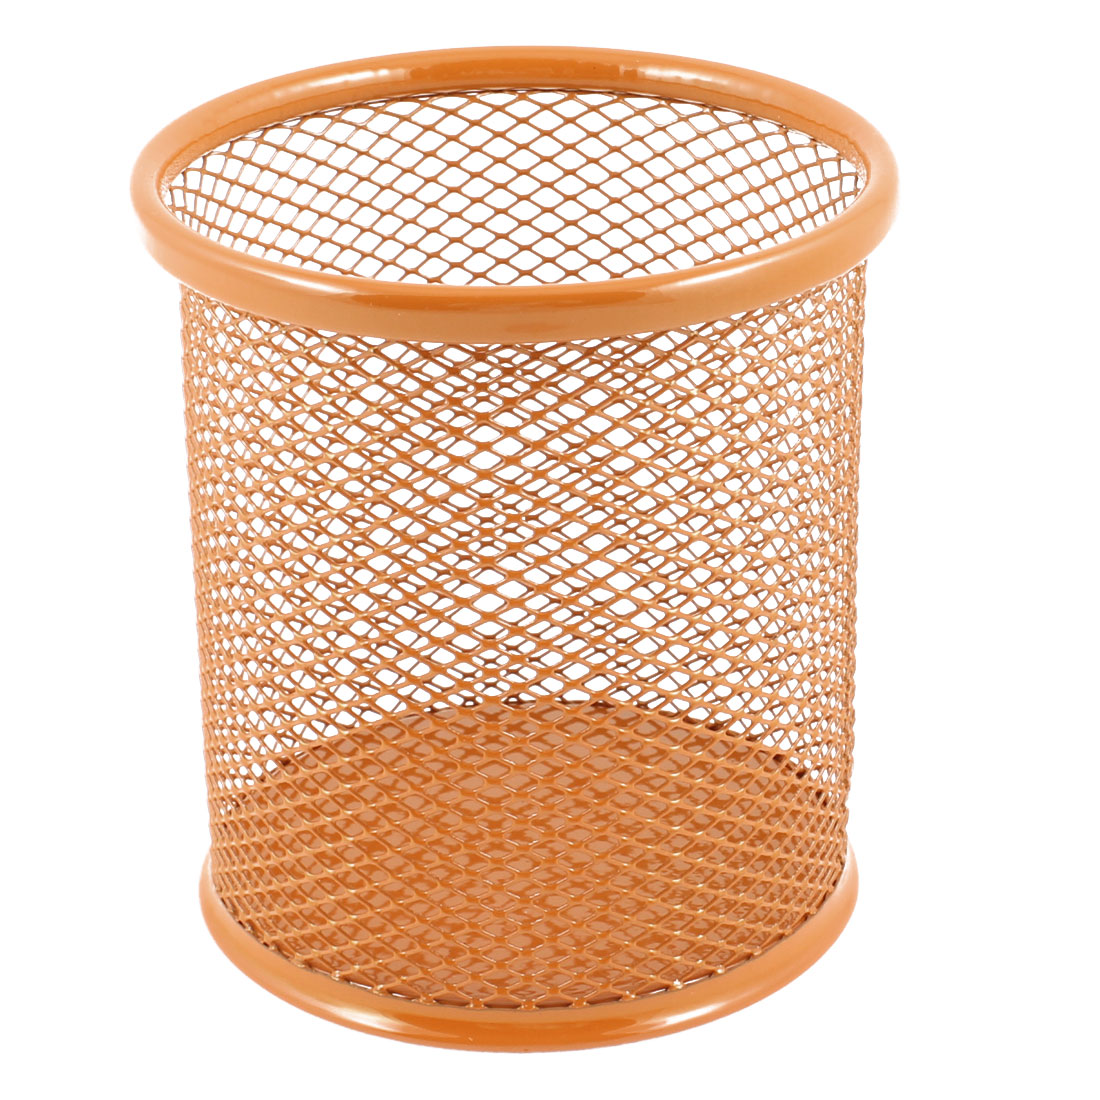 Metallic Mesh Cylinder Shaped Stationery Holder Box Container Orange